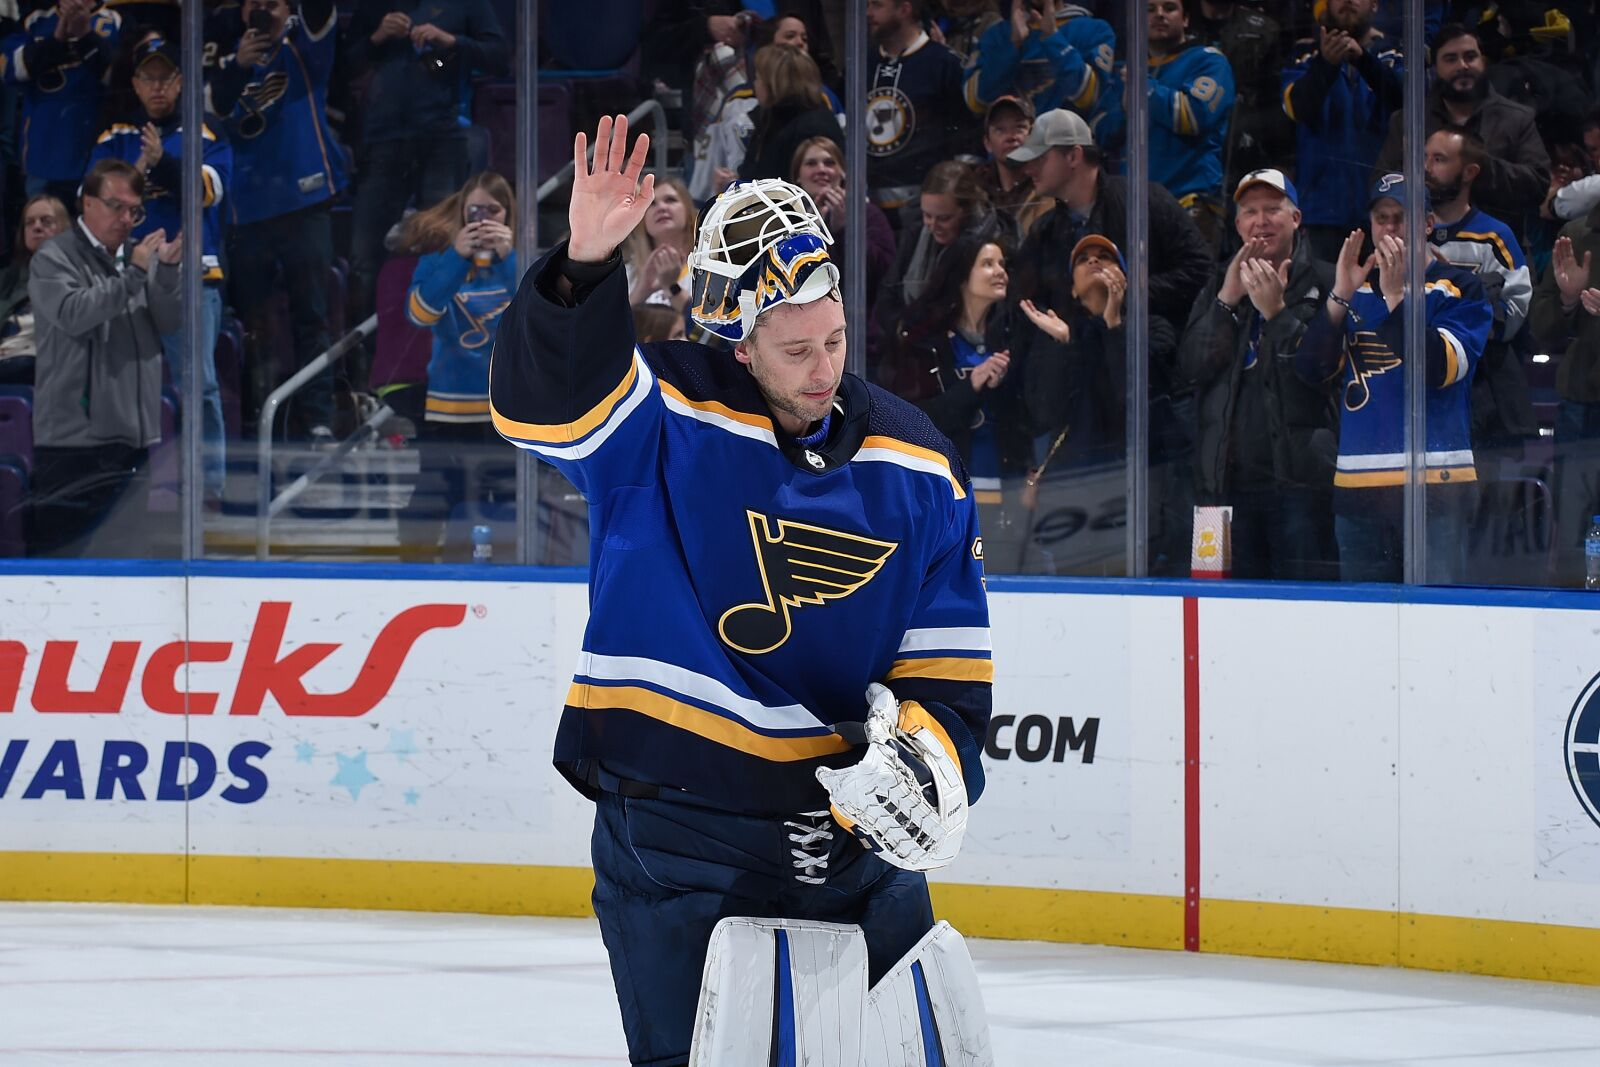 St. Louis Blues: Chad Johnson Creating Yet Another Goalie Controversy